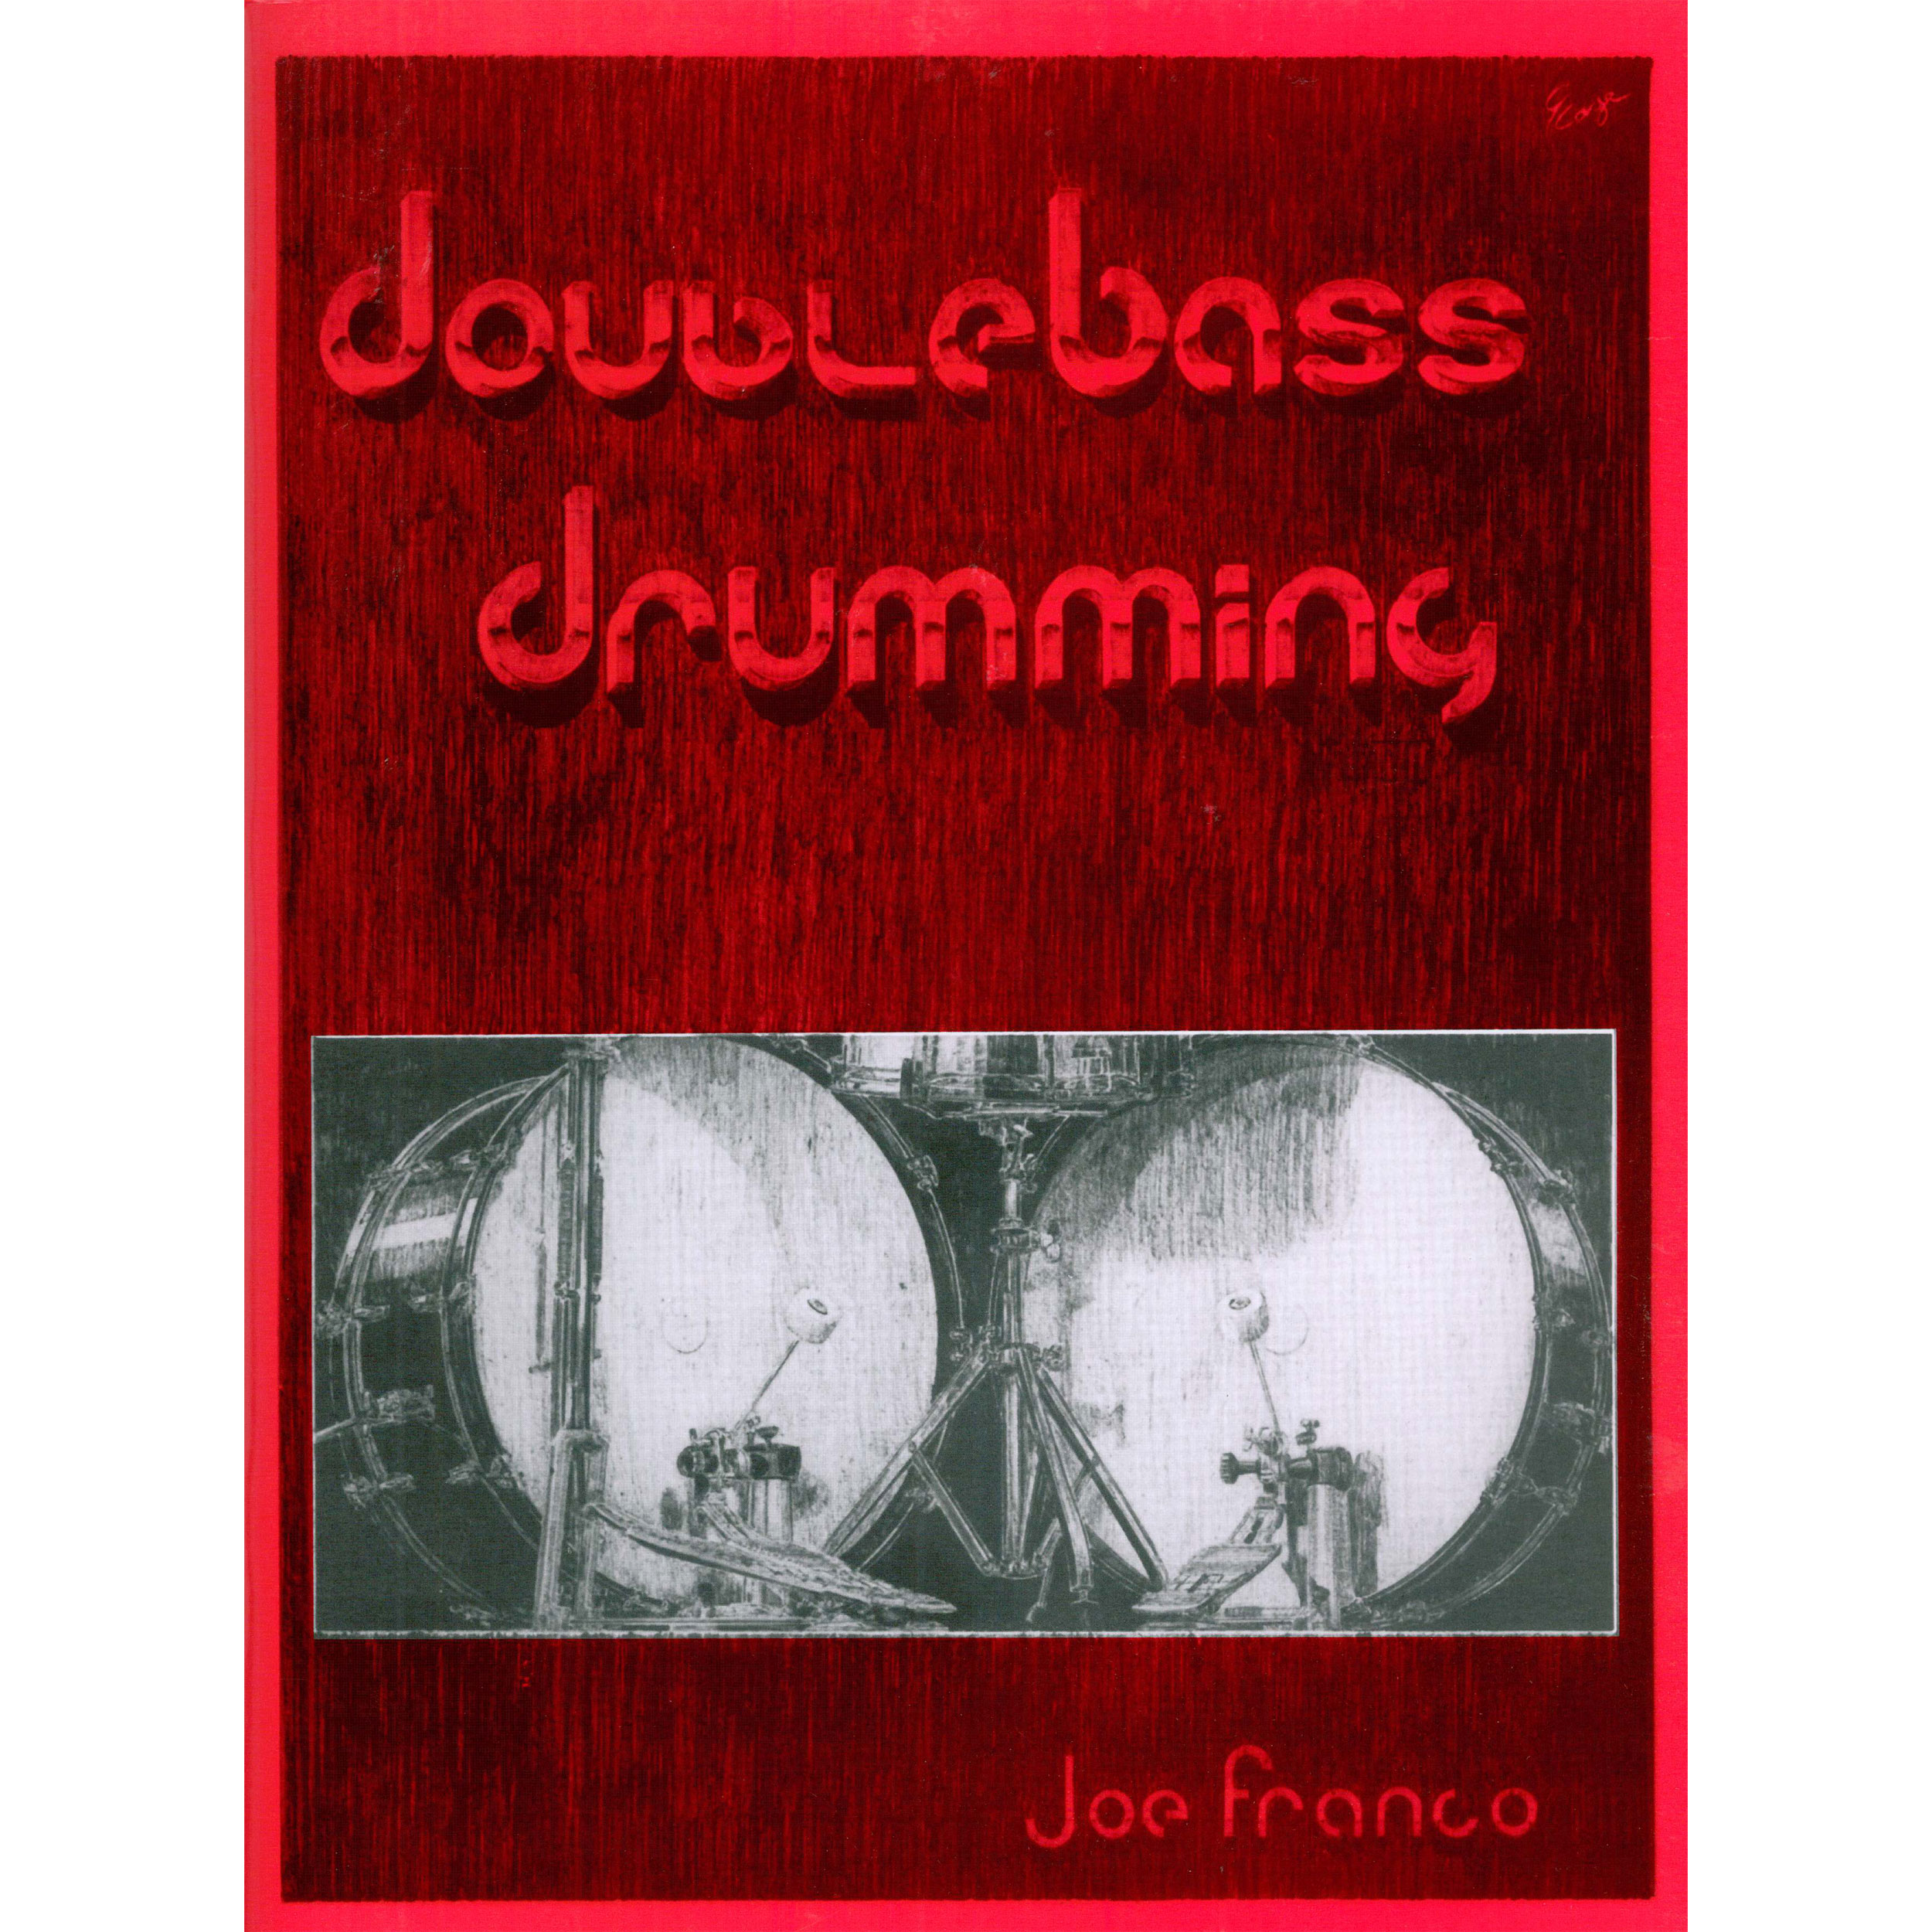 Double Bass Drumming by Joe Franco